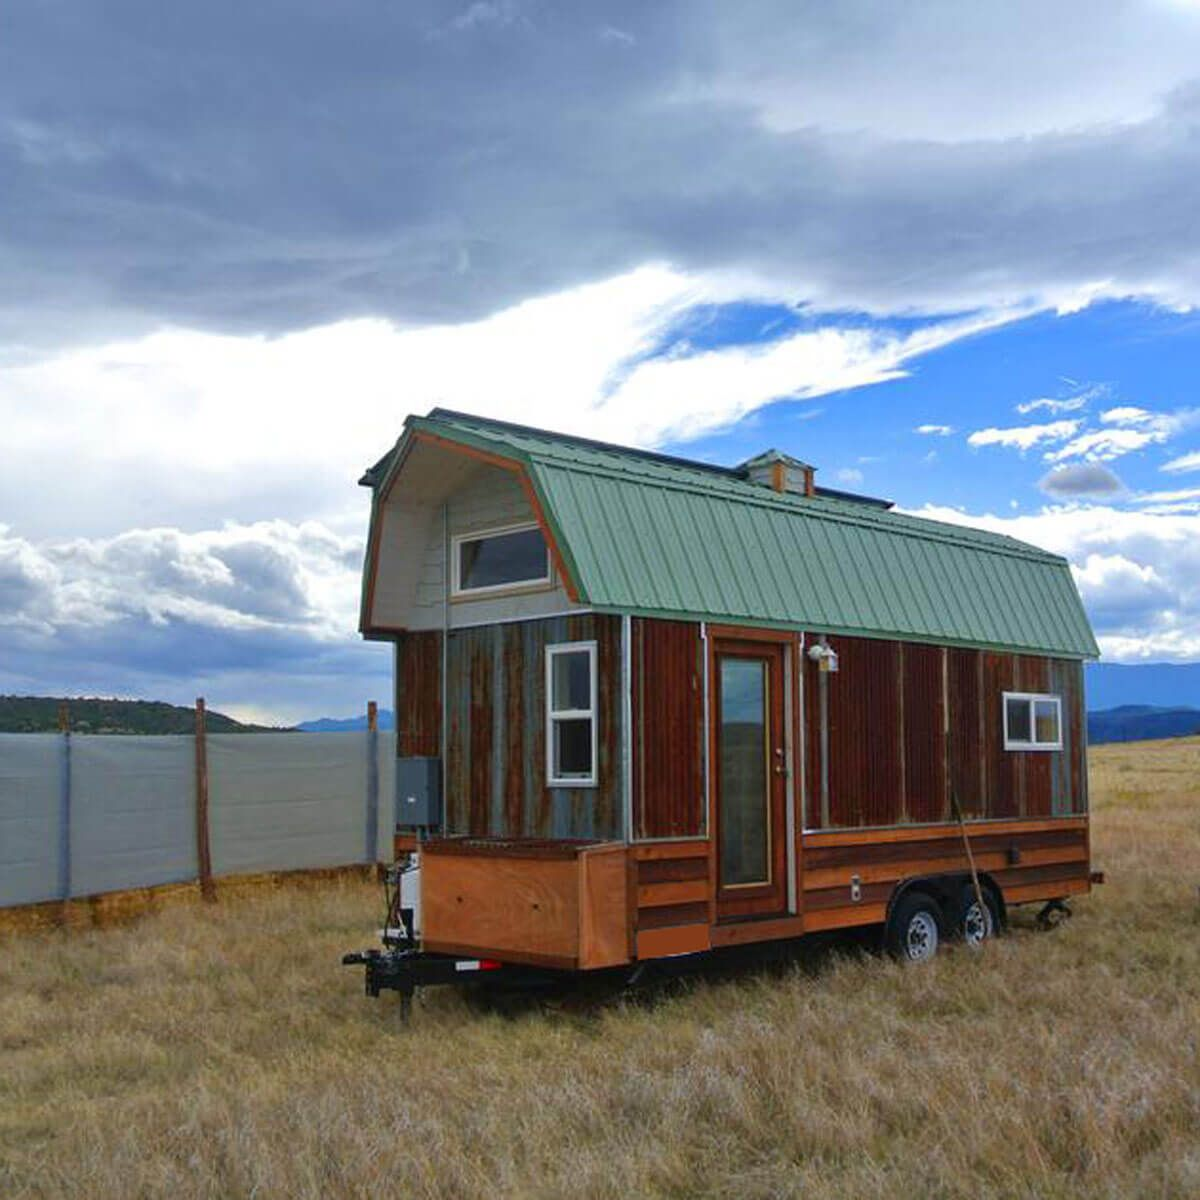 25 tiny homes built from recycled material in 2020 tiny